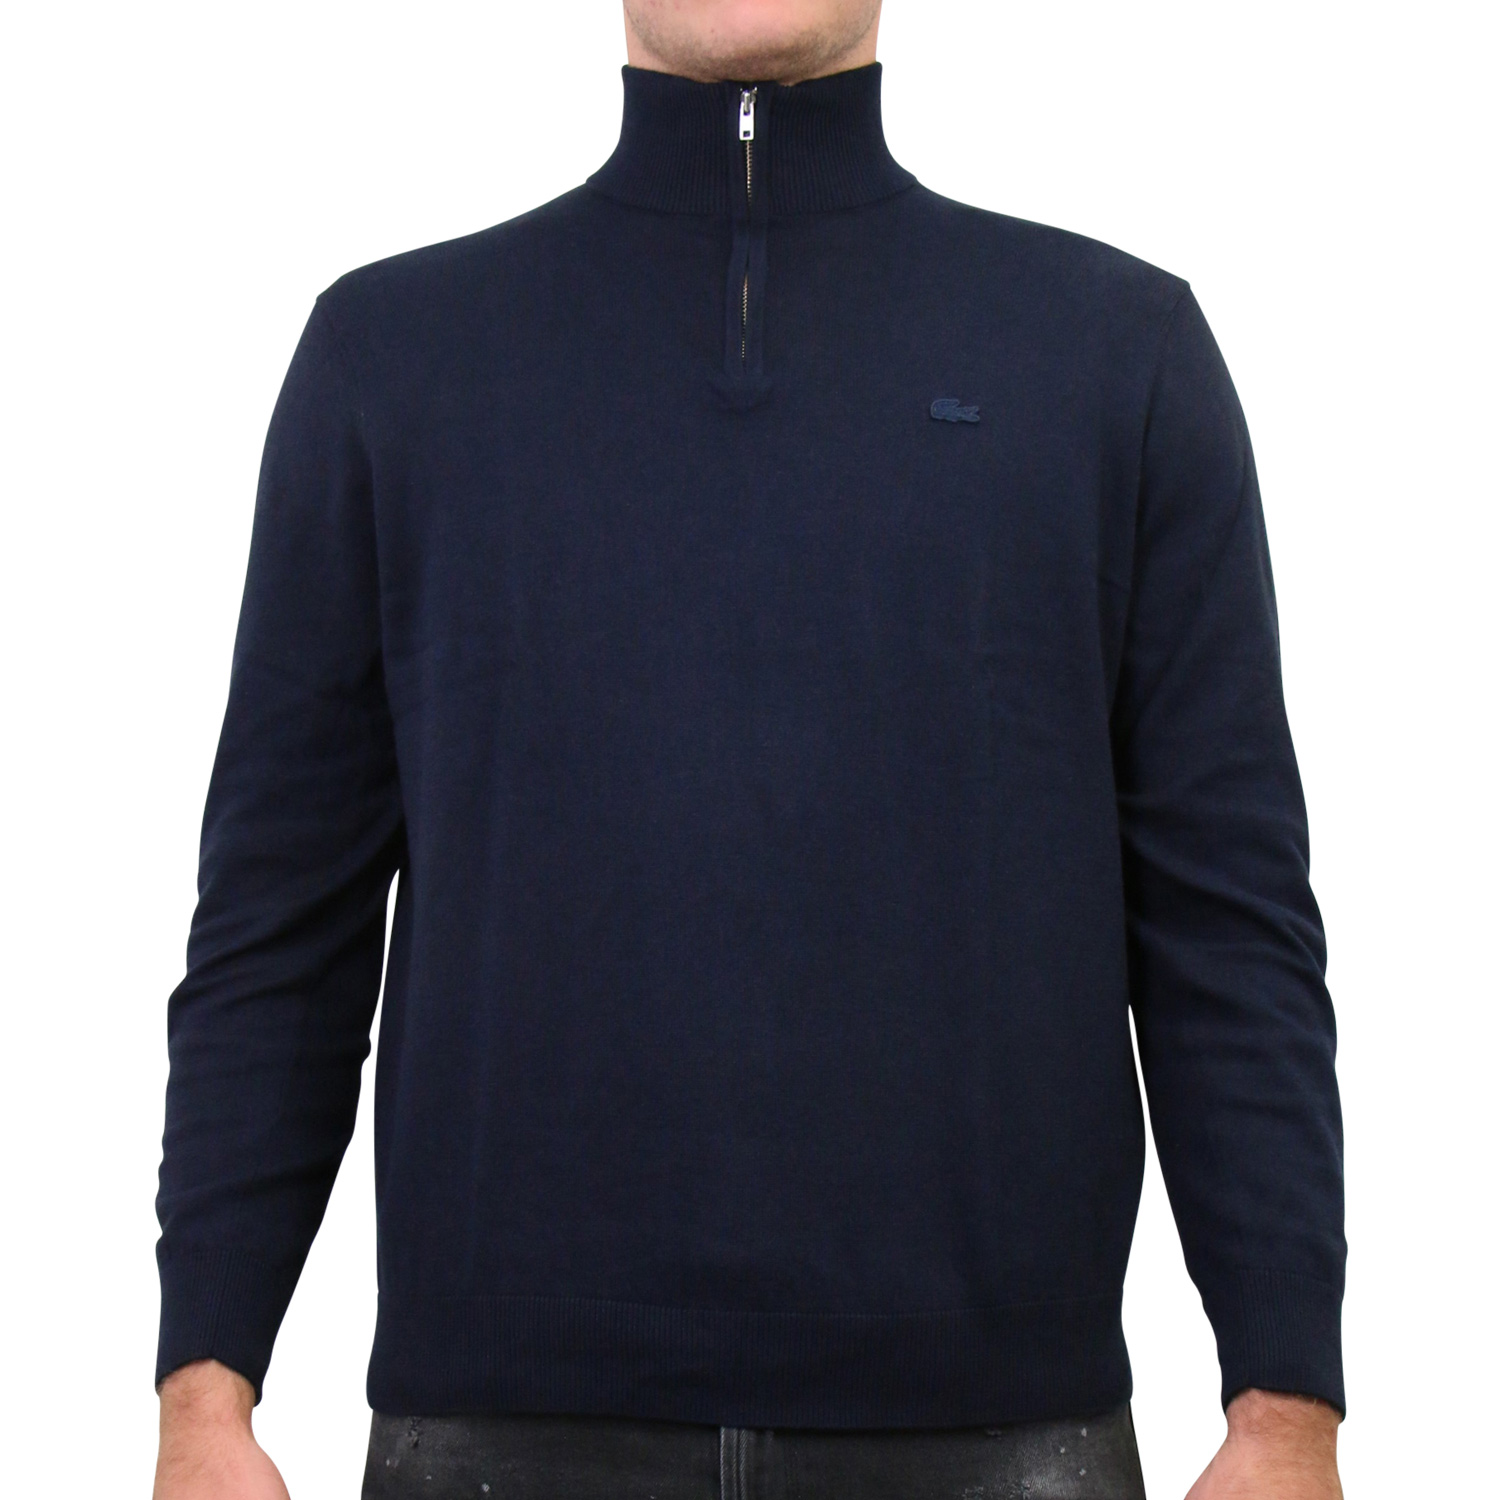 lacoste herren pullover sweatshirt pulli dunkelblau ebay. Black Bedroom Furniture Sets. Home Design Ideas